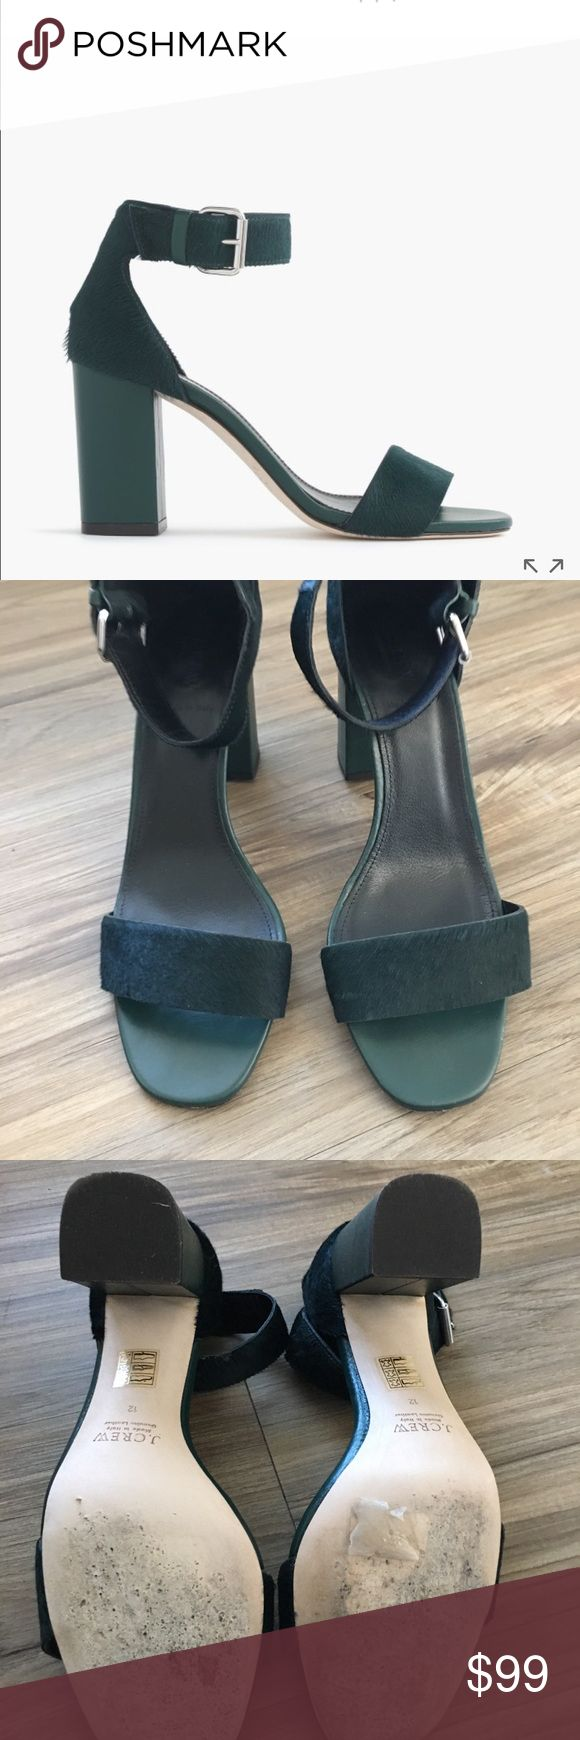 """J Crew Collection Calf Hair Strappy Sandals Sz 12 J Crew Collection Calf Hair Strappy Sandals Color is dark green size 12 Worn Once And in perfect condition. 3 1/2 """" Heel.  Calf hair upper. Leather lining and sole. Made in Italy.  Item E0130. J crew Shoes Heels"""